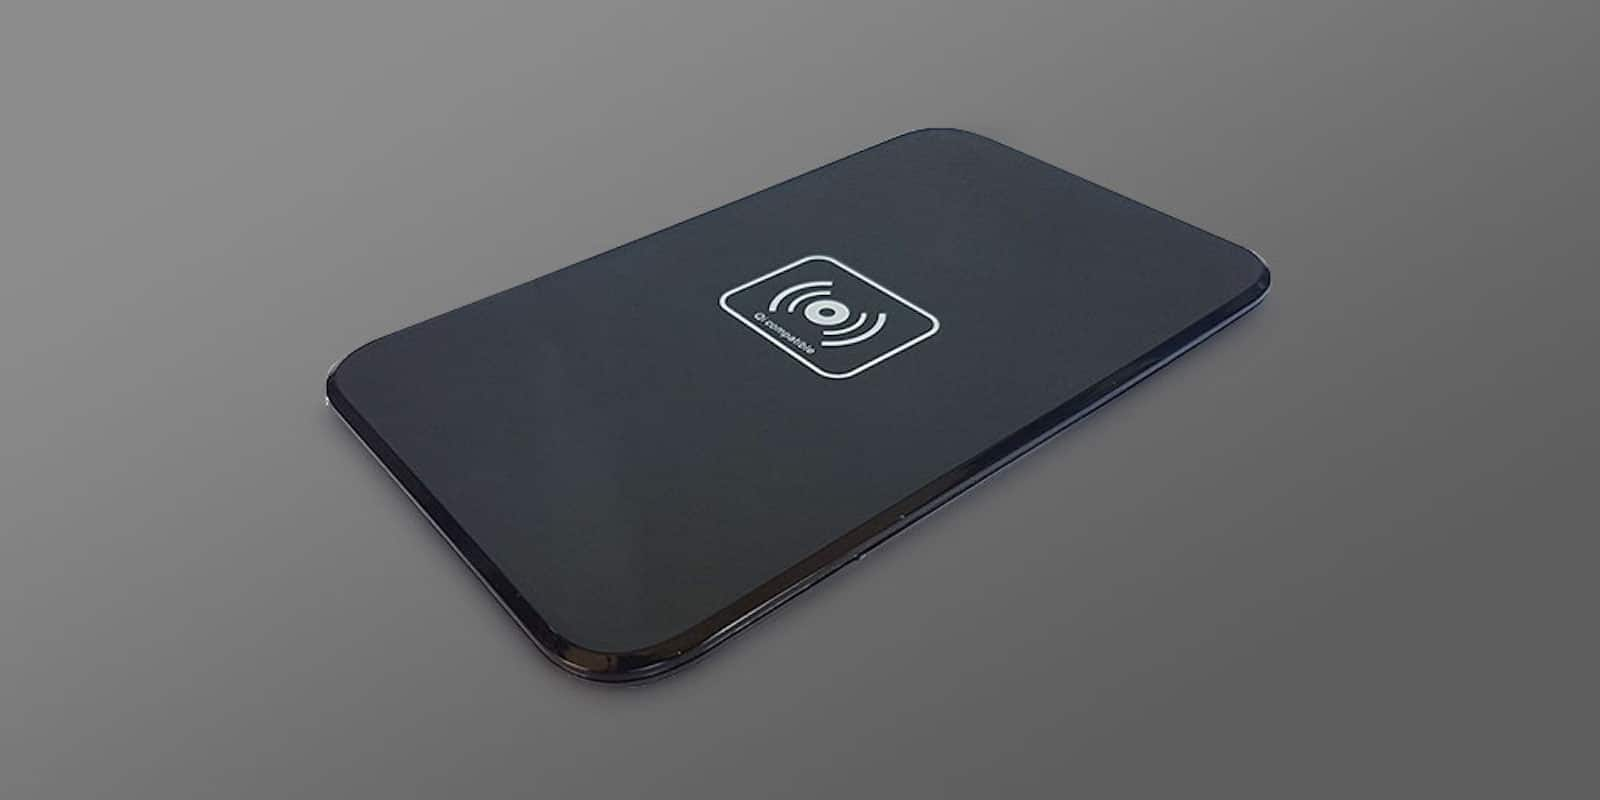 Wireless charging is here, and now you can get it in your home with this charging pad.